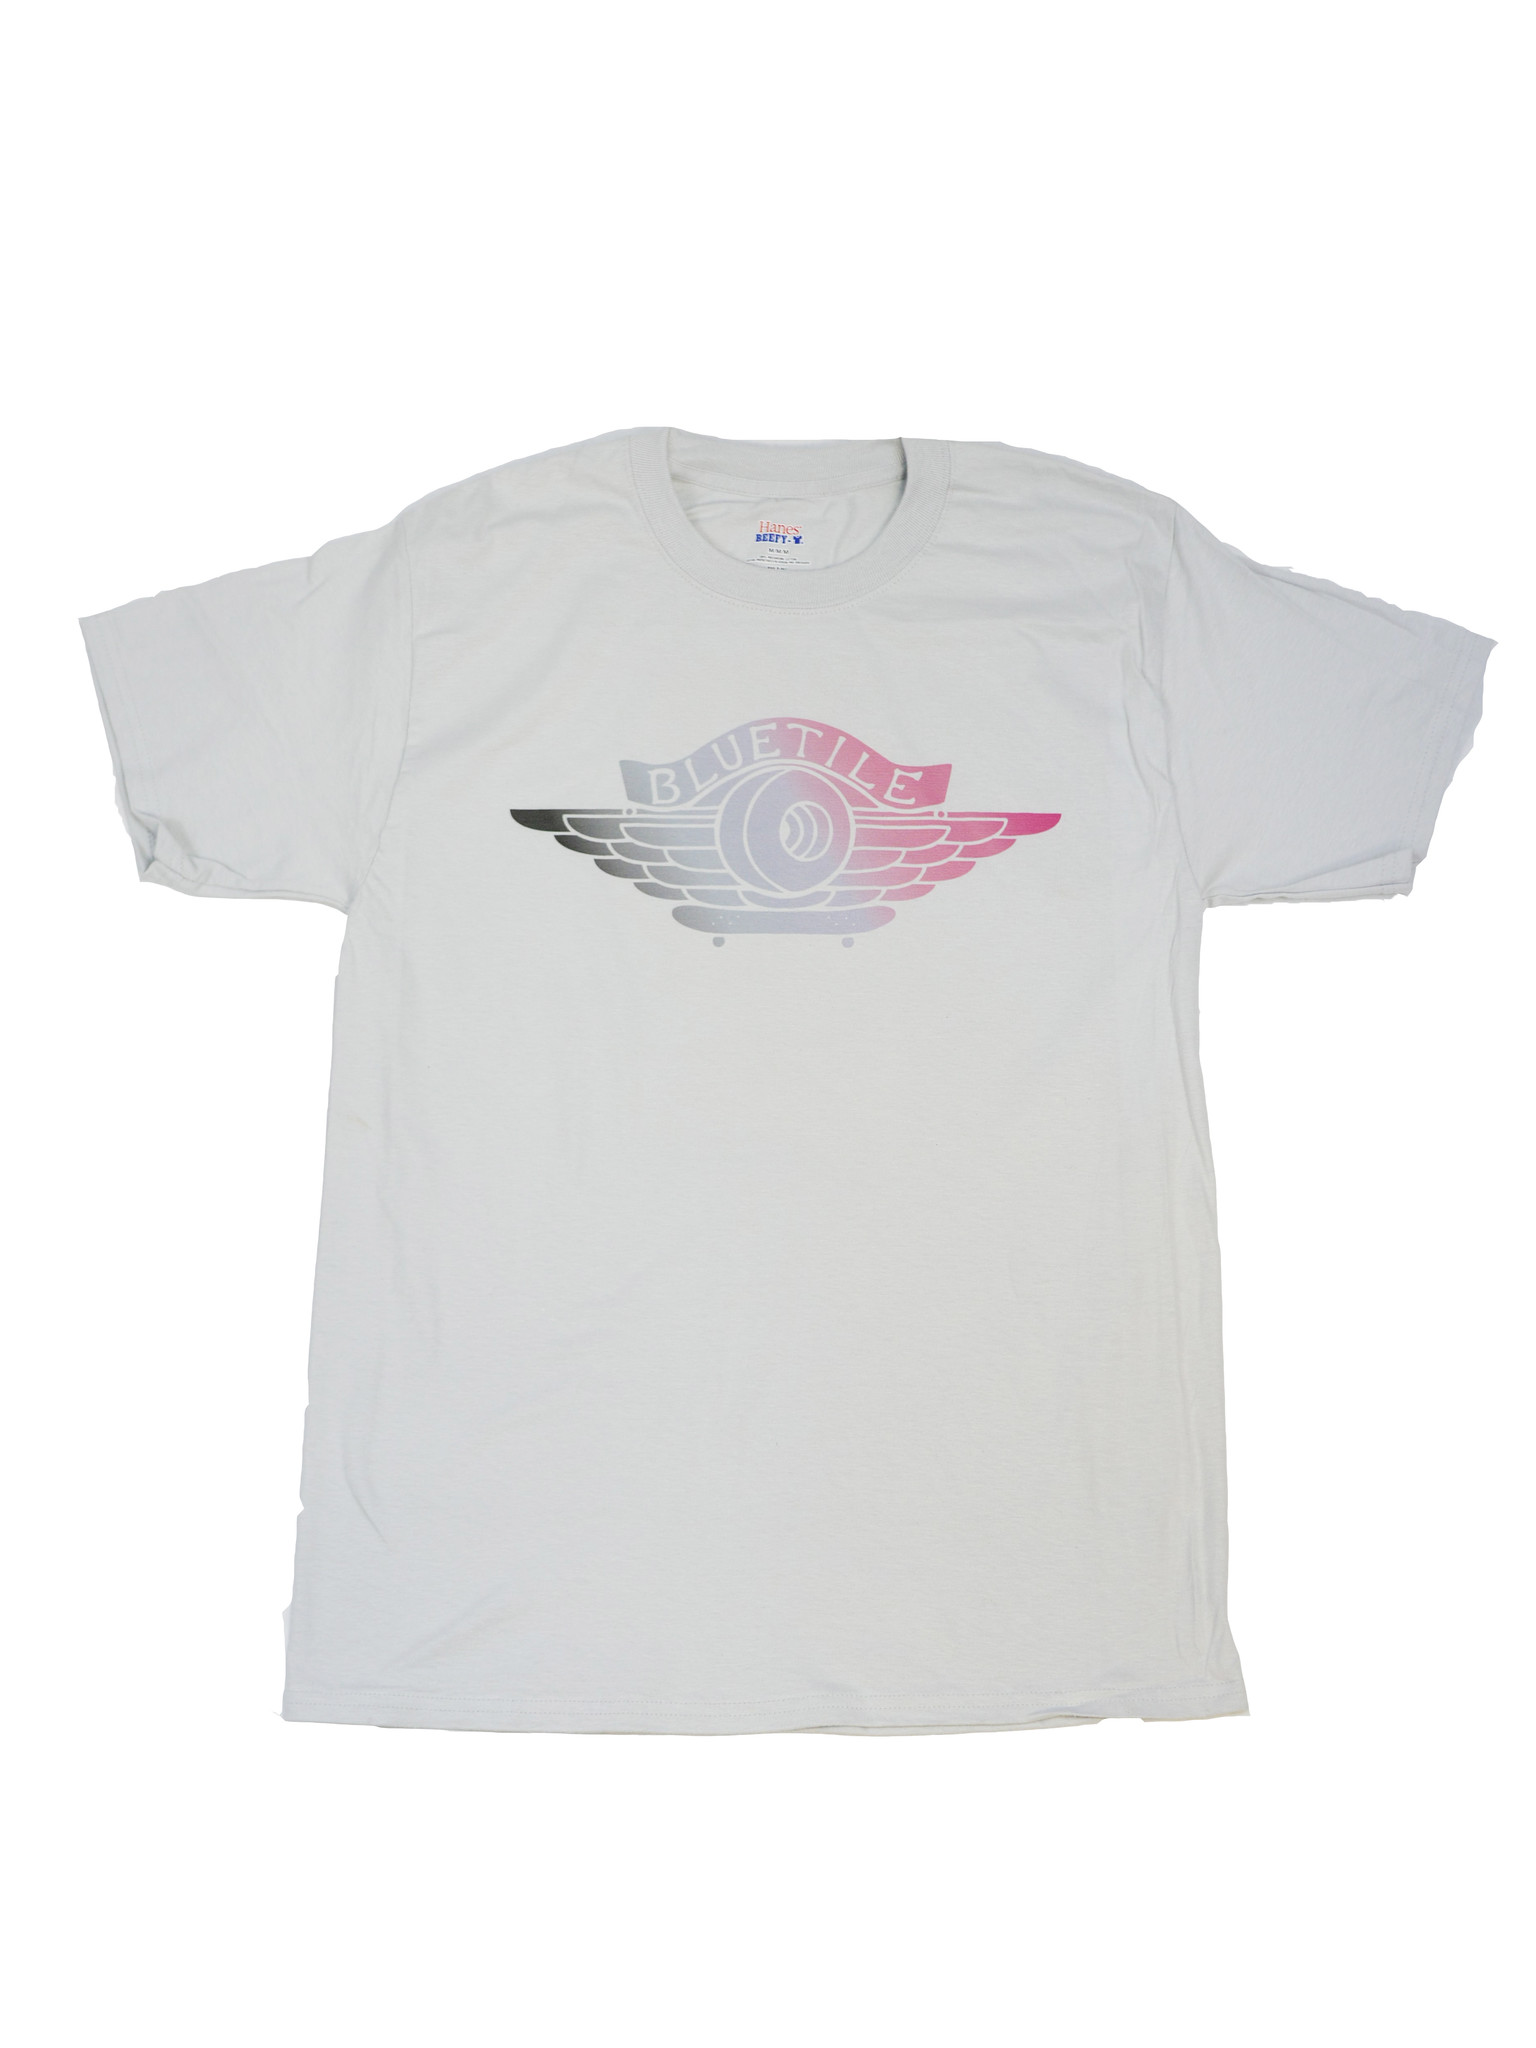 BLUETILE BLUETILE NY TO PARIS JORDAN 1 T-SHIRT GREY